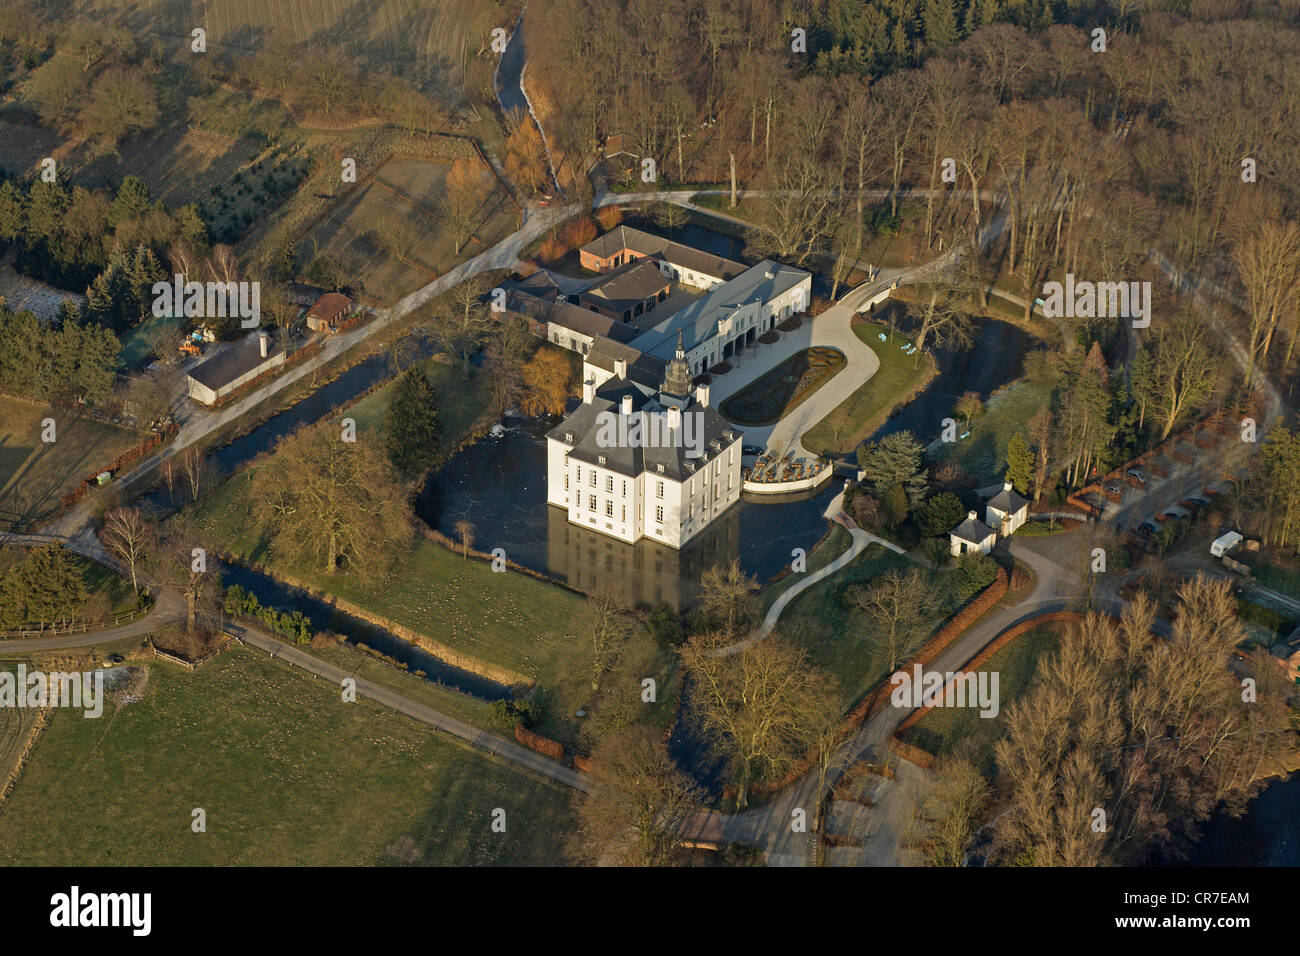 Aeral view, Schloss Gartrop moated castle with frozen moat, Huenxe, Ruhr Area, North Rhine-Westphalia, Germany, - Stock Image